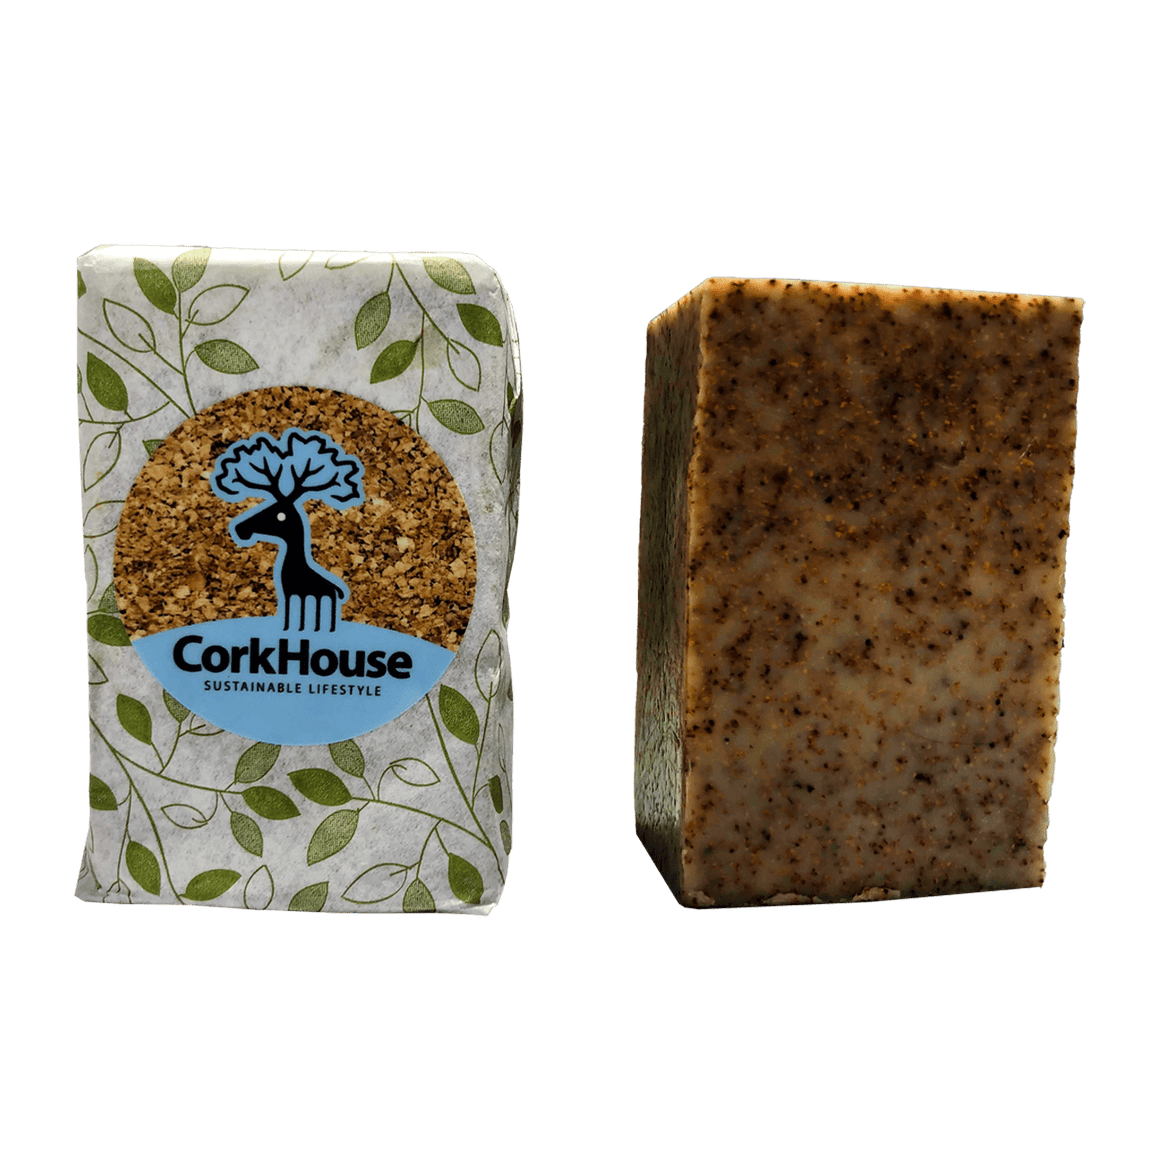 CorkHouse CorkHouse Bar Soap - Rosemary & Orange